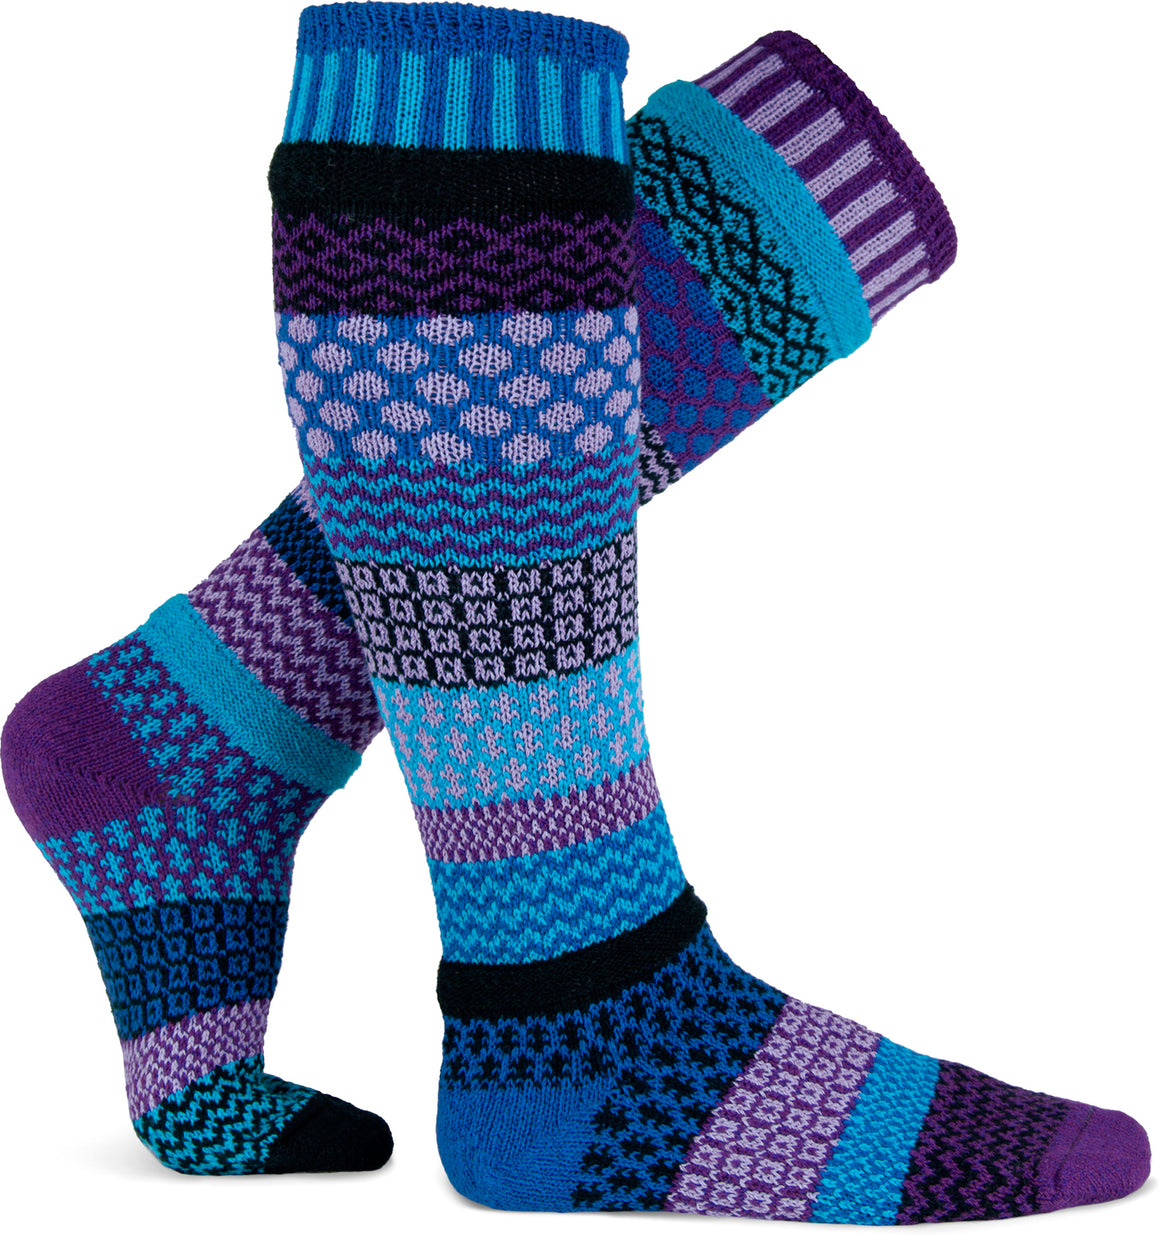 Raspberry Adult Knee Sock - XEJRA